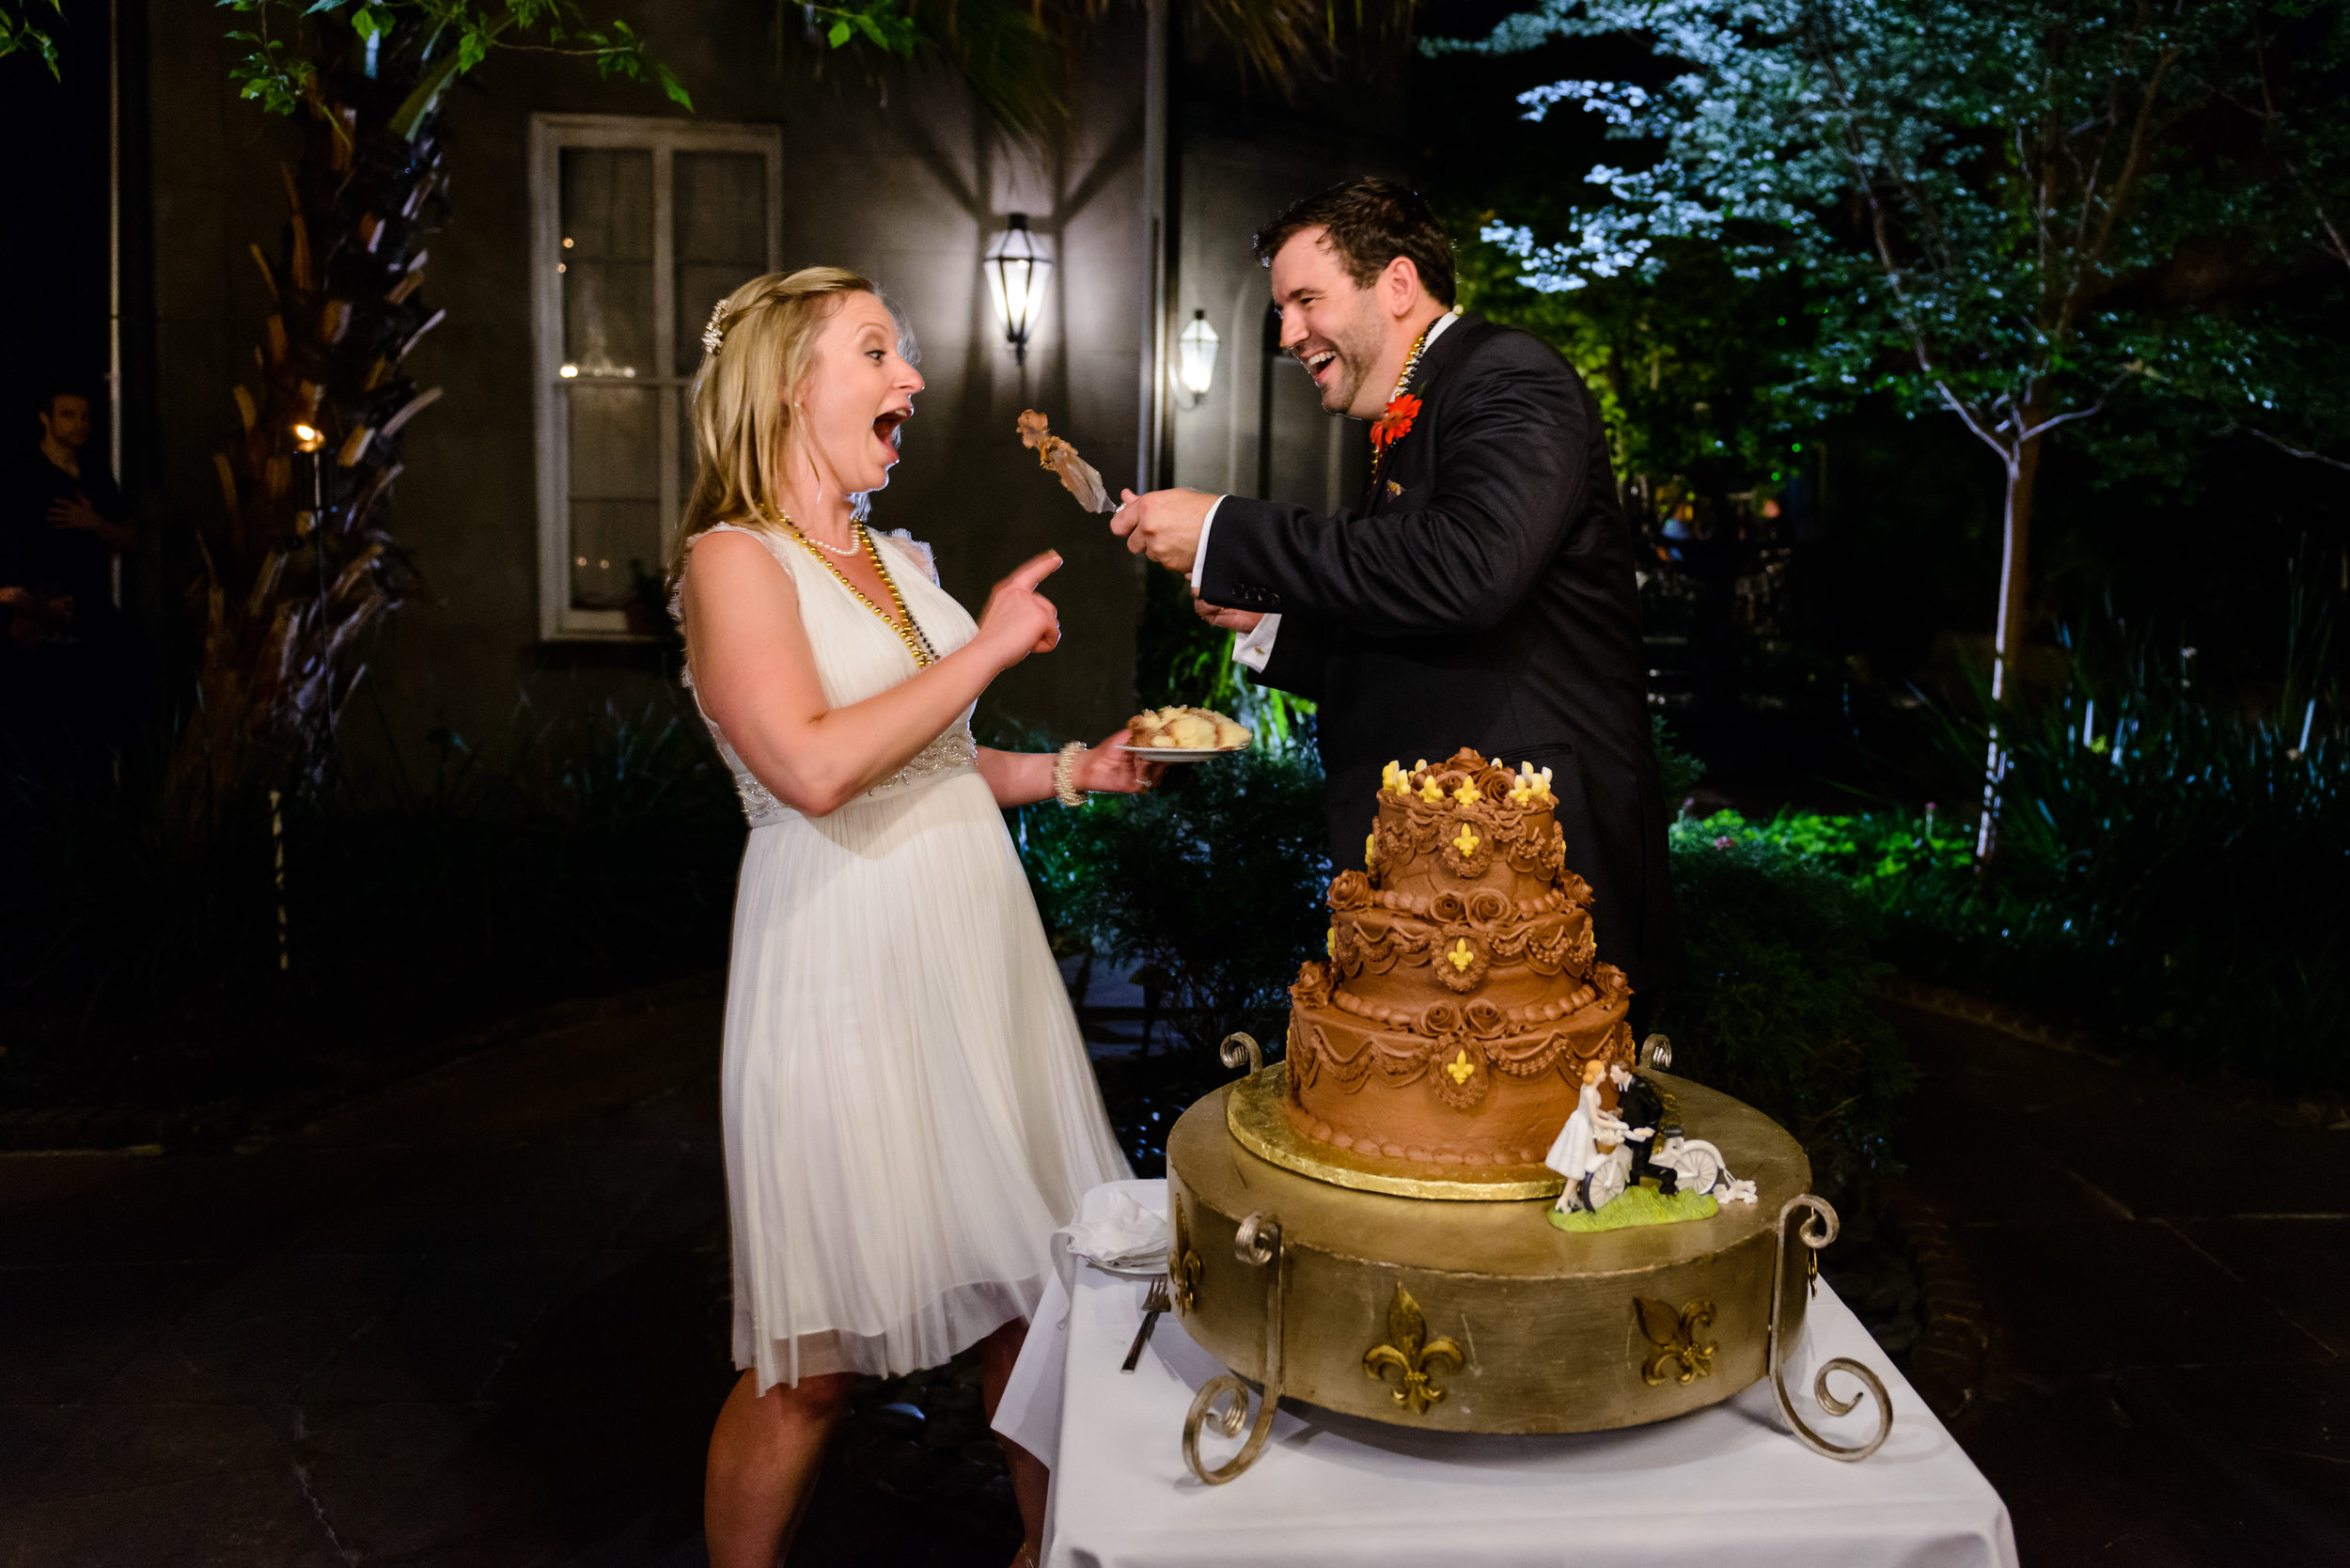 Bride and groom cutting cake at Cafe Amelie, New Orleans